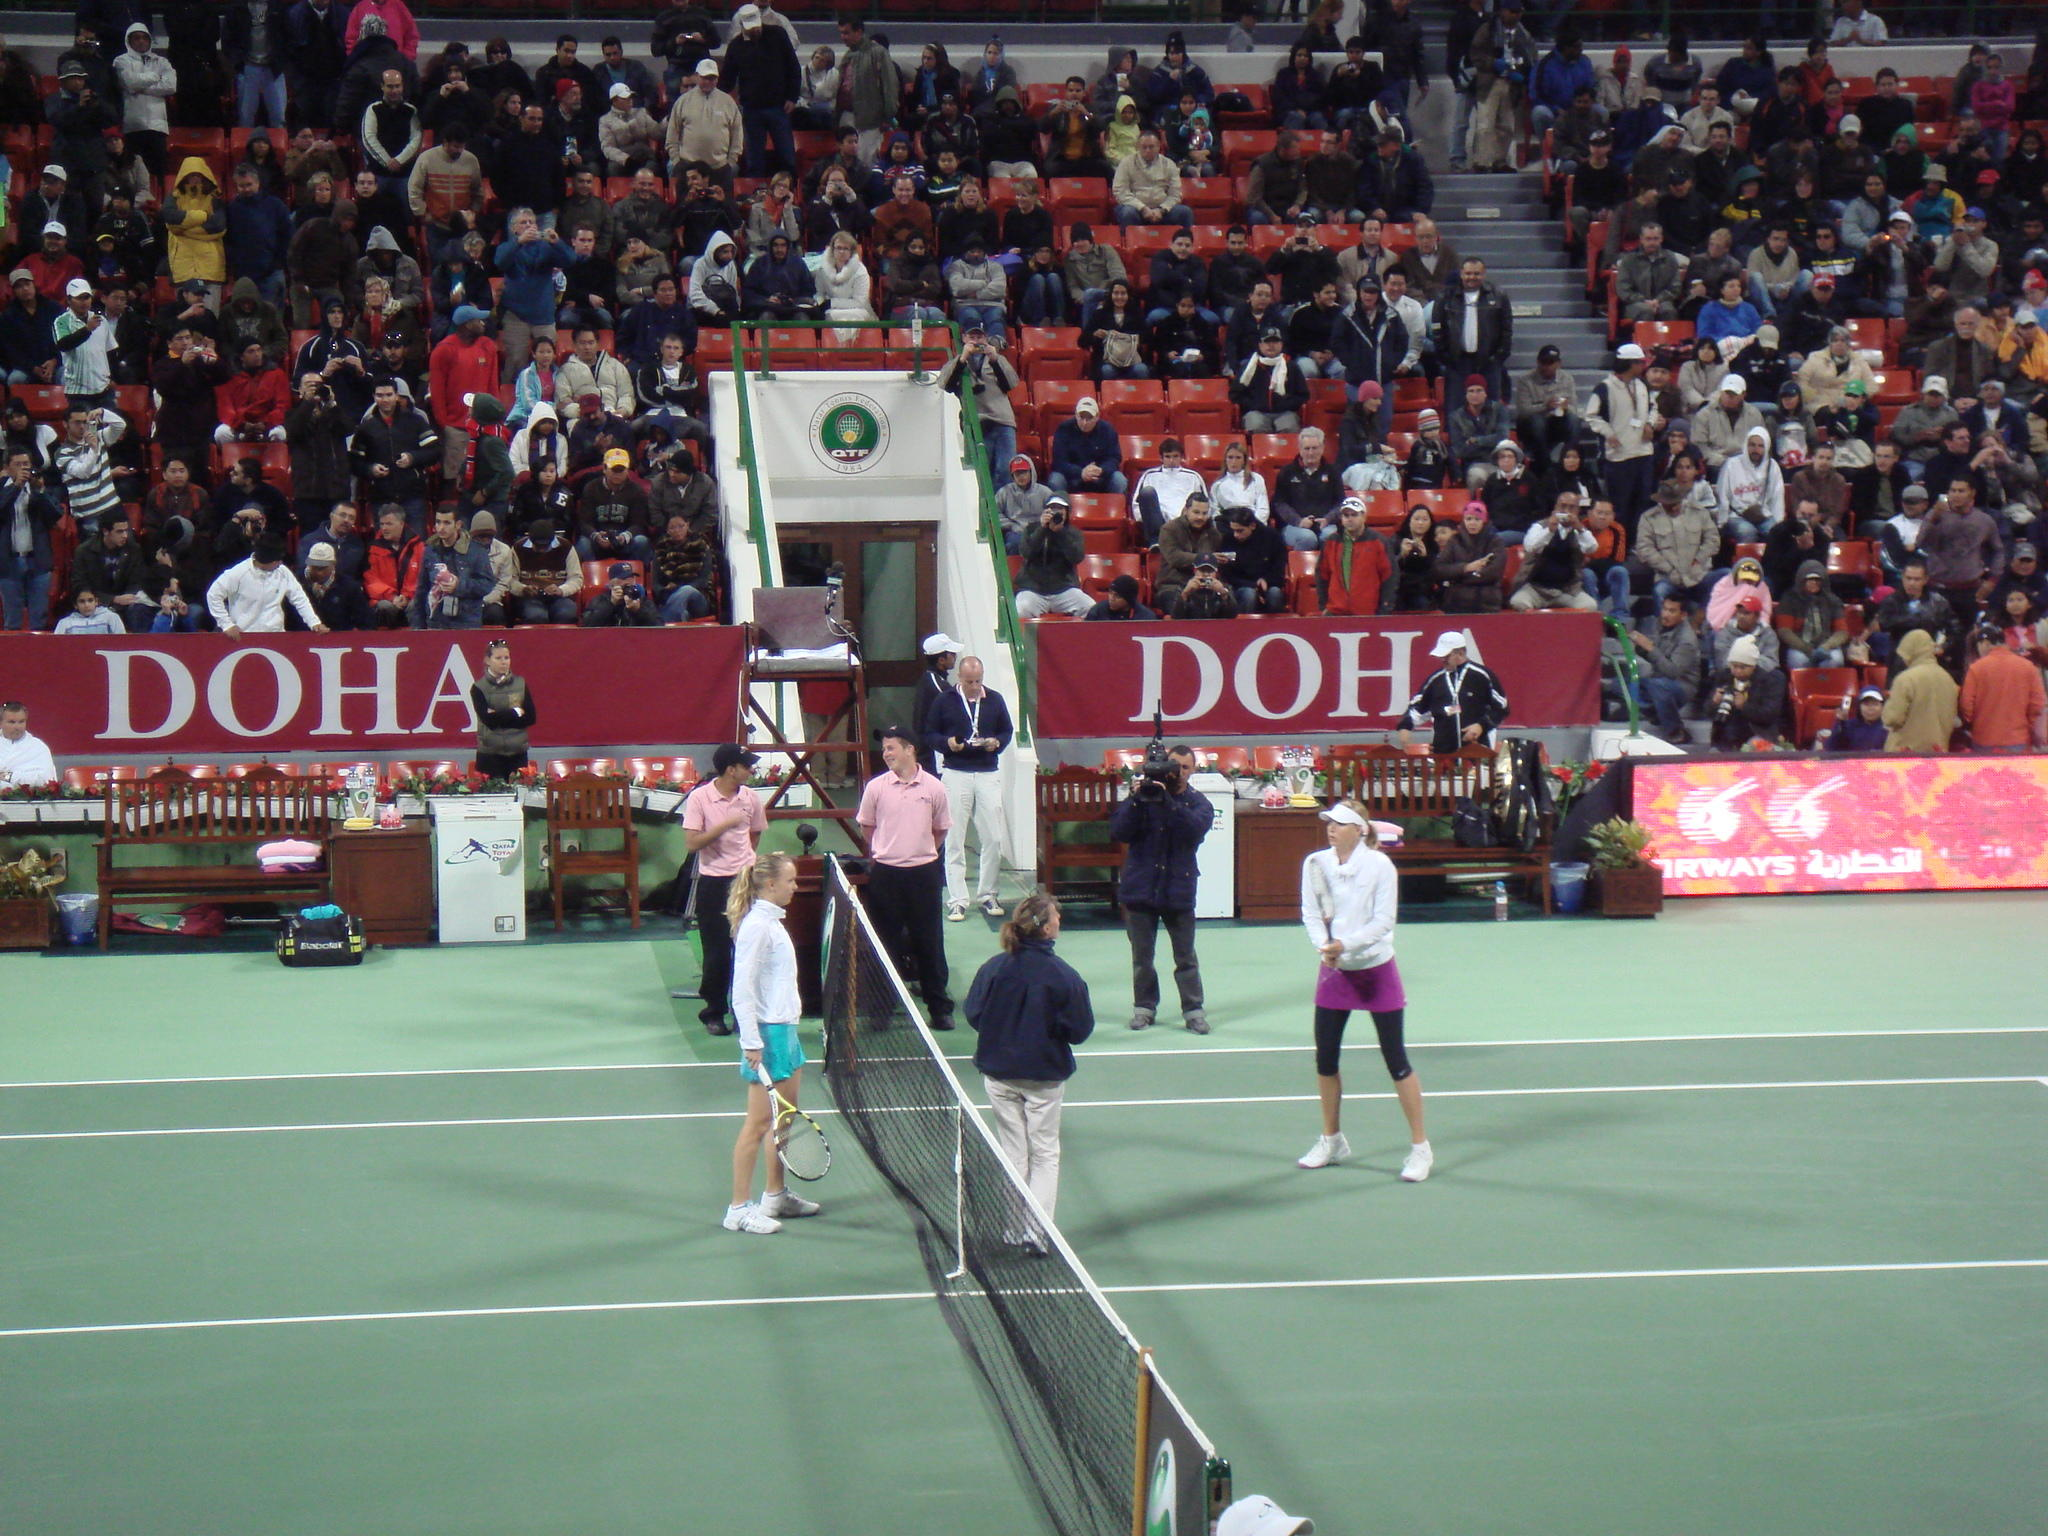 Qatar Total Open 準々決勝